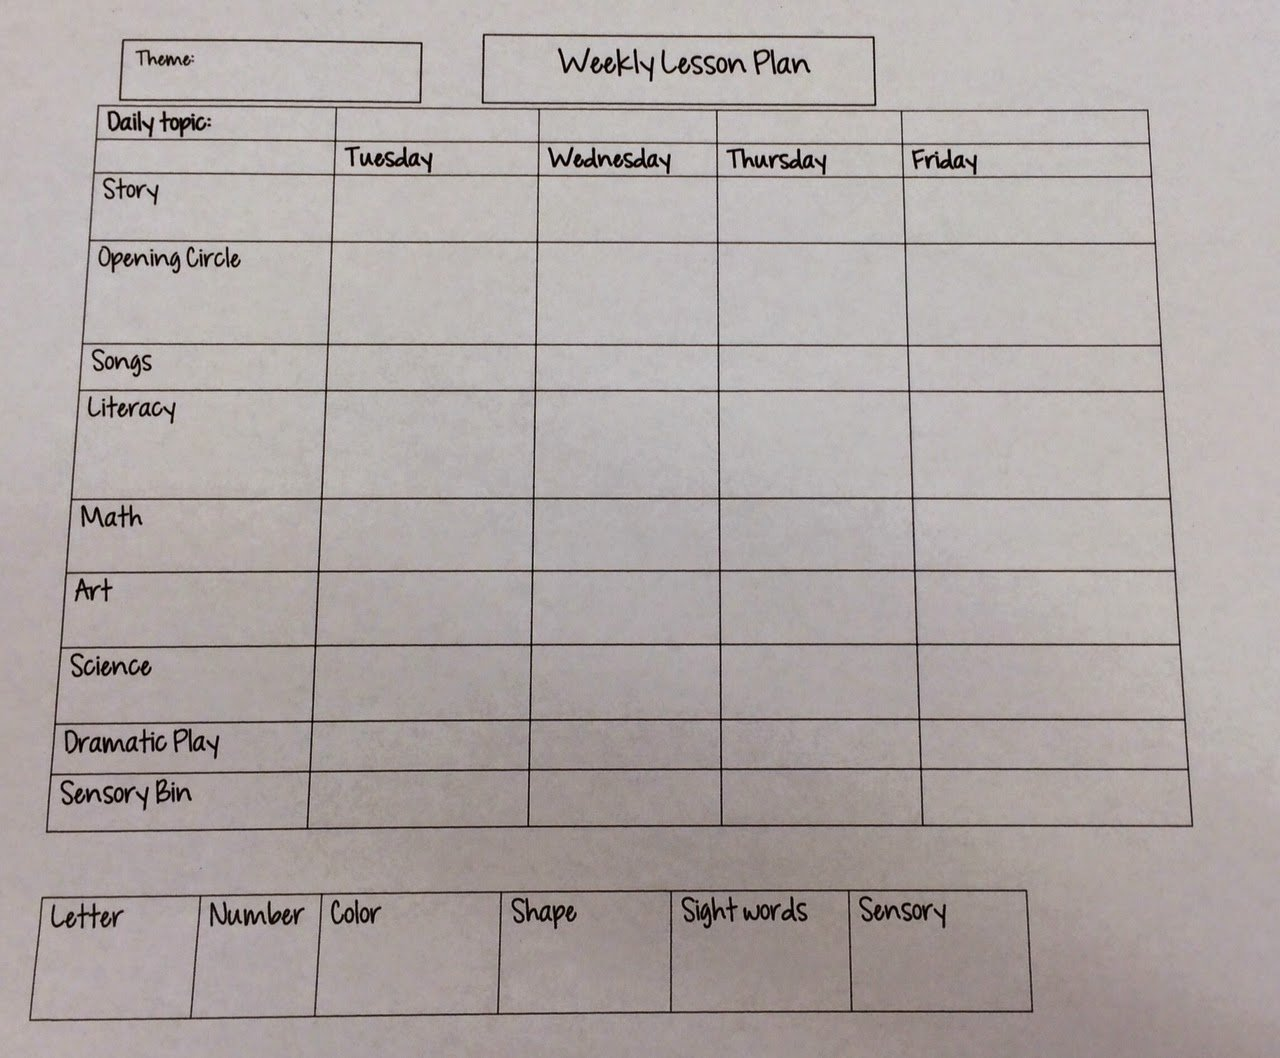 Miss Nicole S Preschool Weekly Lesson Plan Template